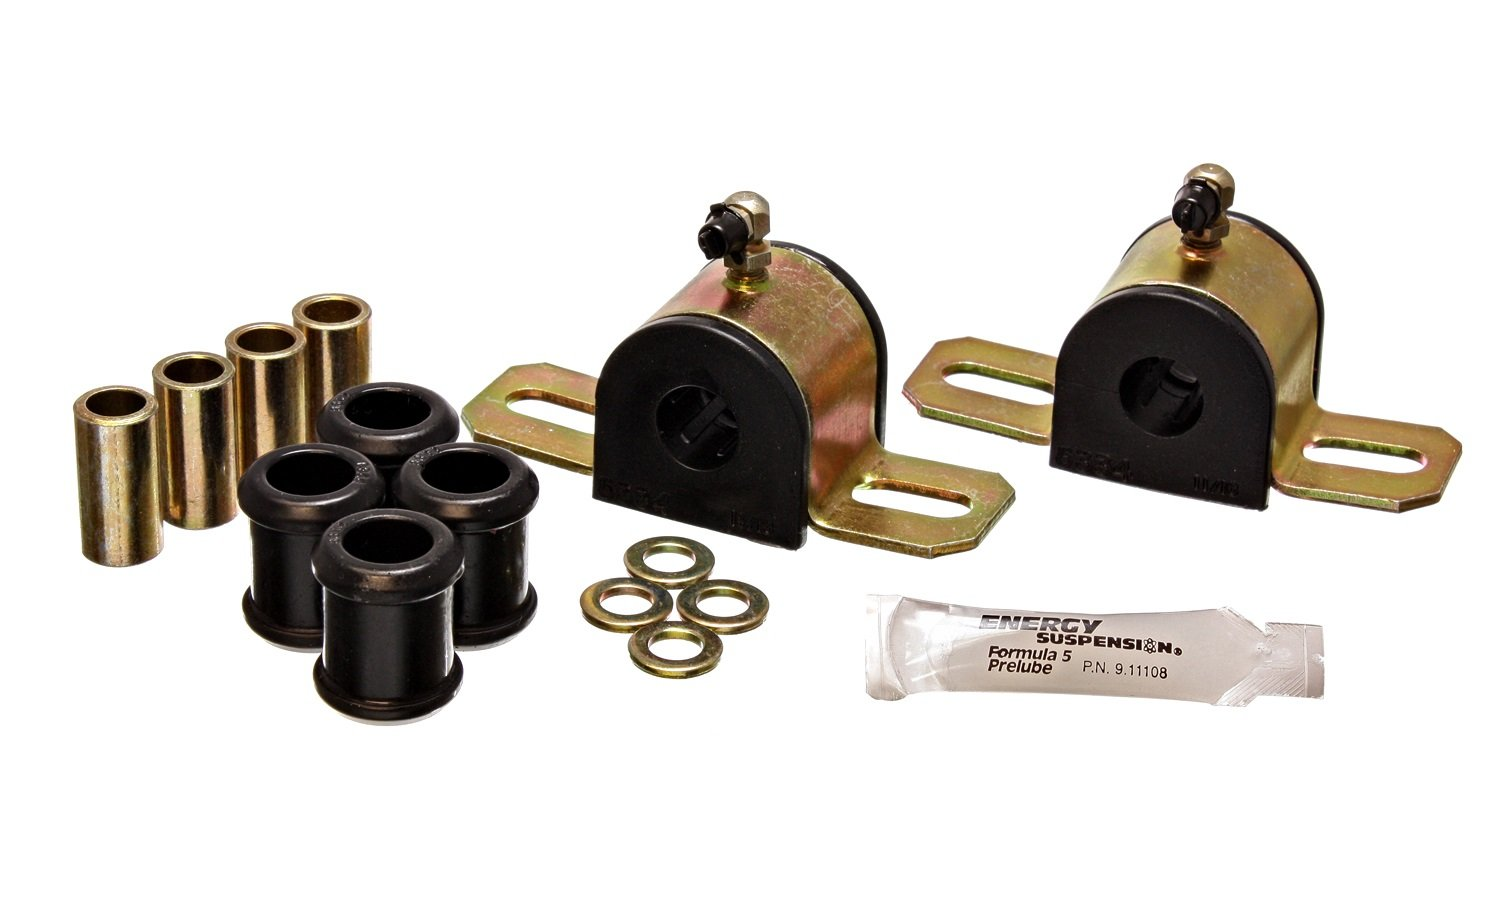 Energy Suspension 5.5173G REAR SWAY BAR BUSHING SET 17.5 MM by Energy Suspension